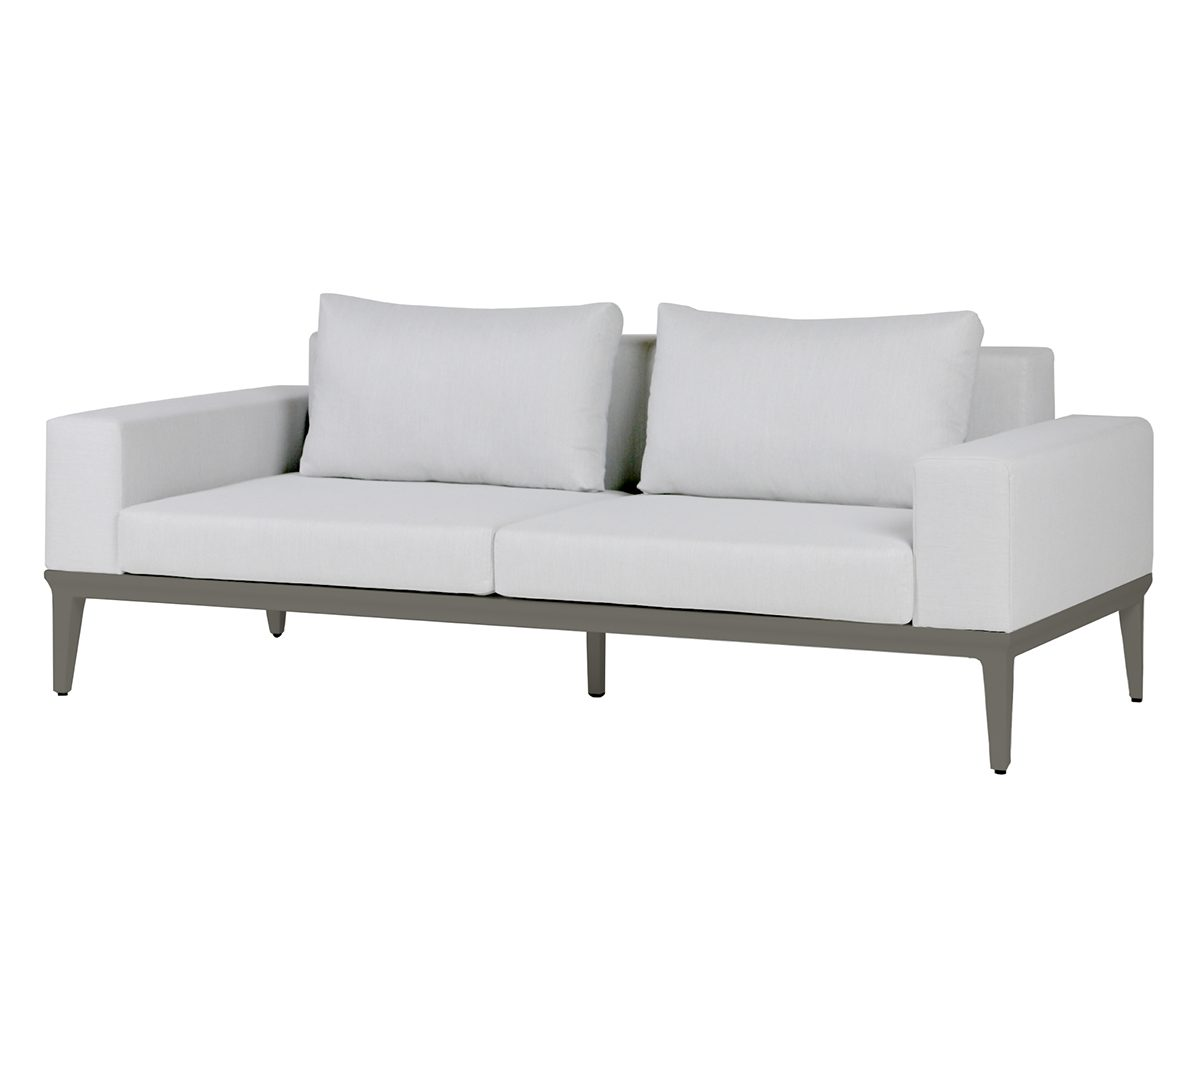 Alassio 2.5 Seater Sofa | Patio Bay